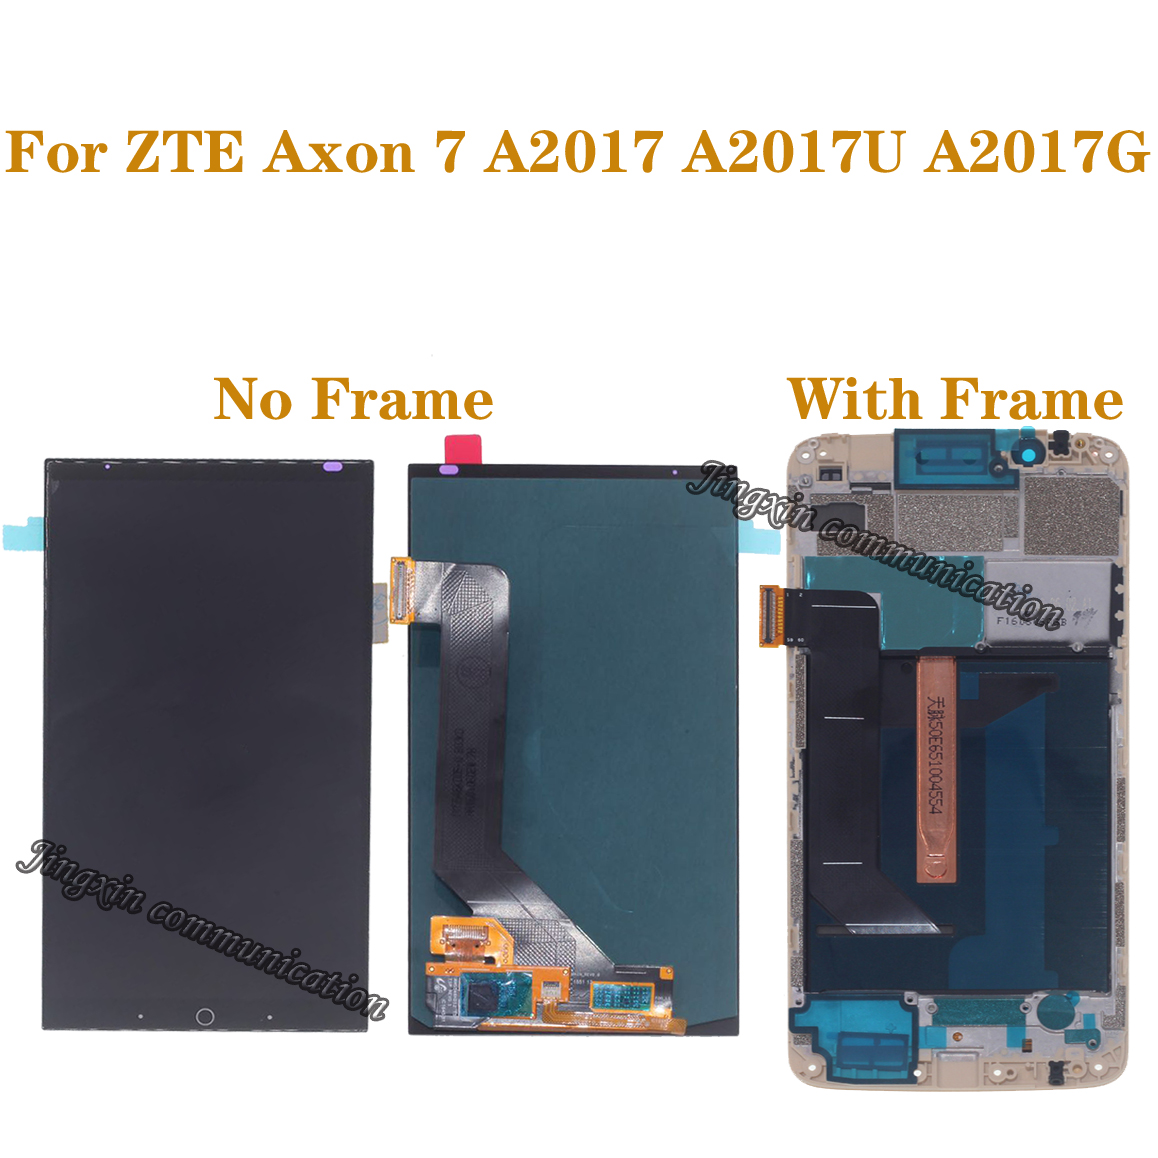 100% tested original AMOLED screen For ZTE Axon 7 A2017 A2017U A2017G LCD display + touch screen digitizer replaceable screen-in Mobile Phone LCD Screens from Cellphones & Telecommunications